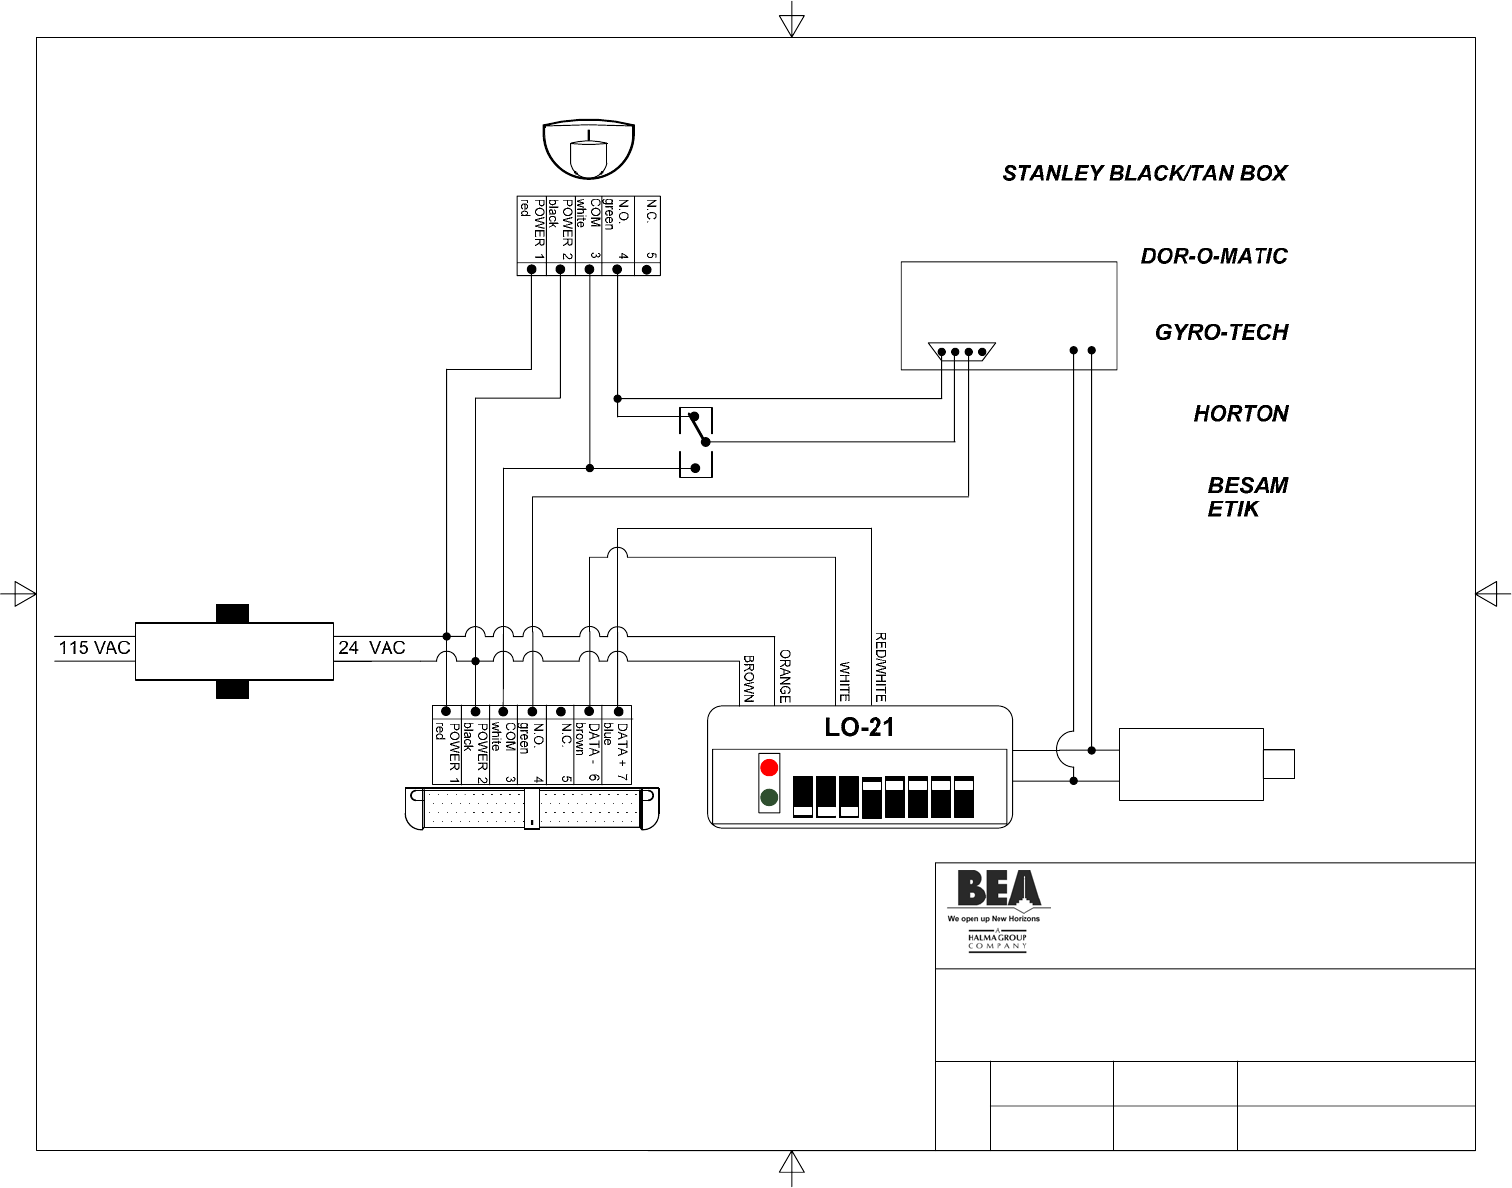 Bea Switch 80 0000 02 User Guide